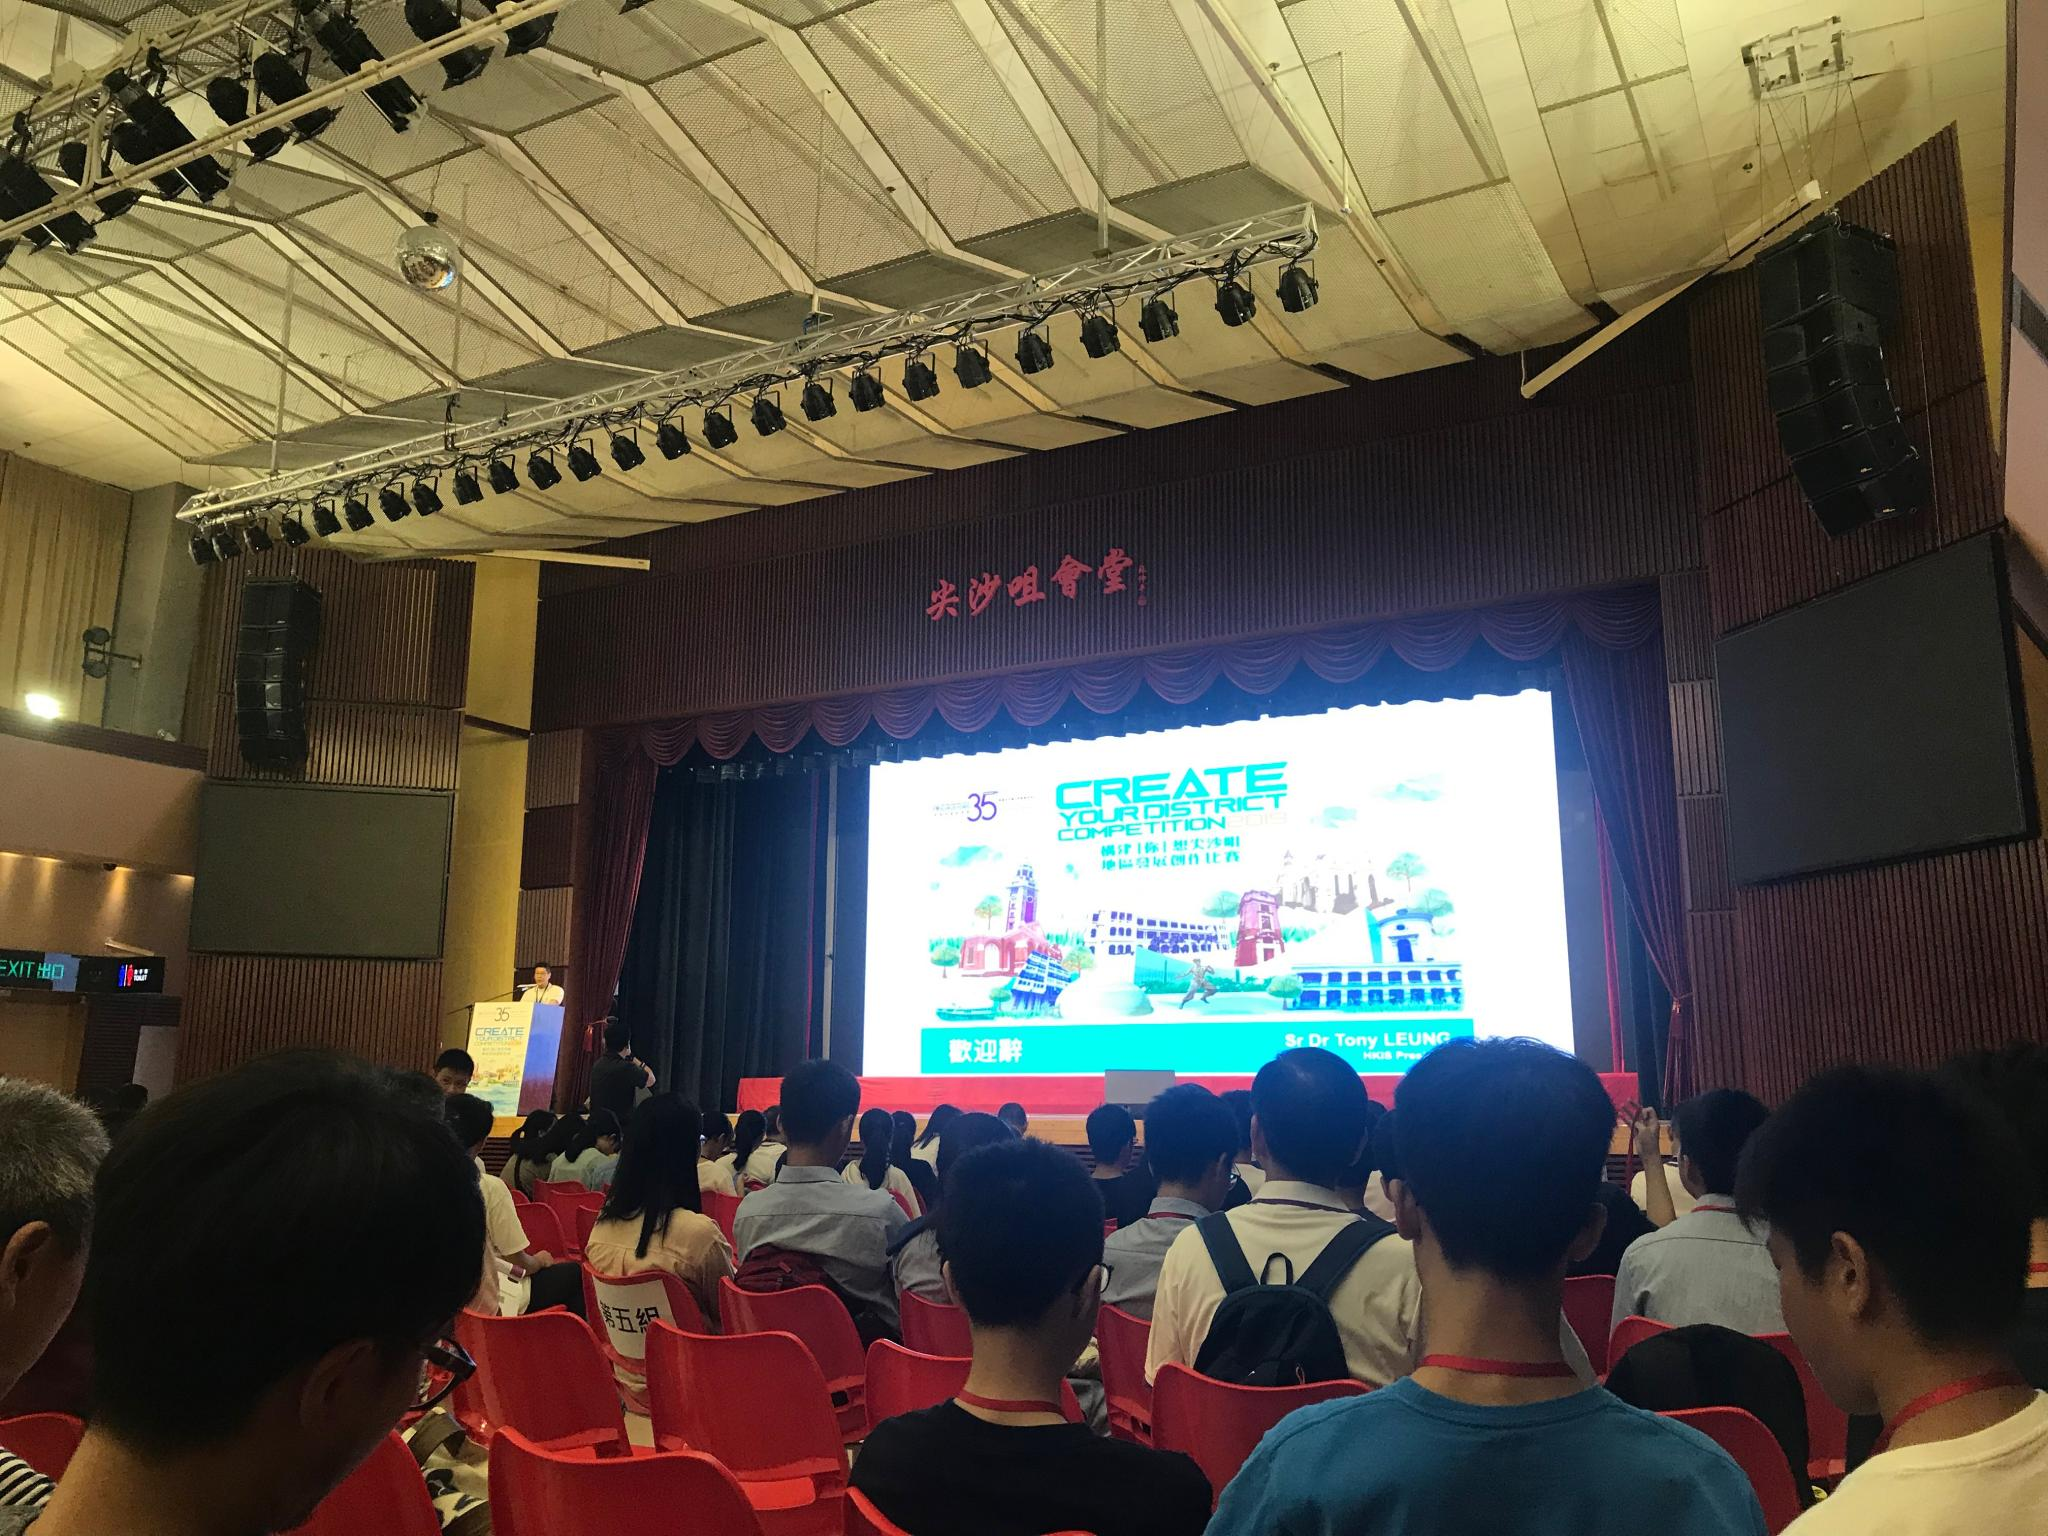 The briefing session was held in Tsim Sha Tsui District Kaifong Welfare Association Assembly Hall.